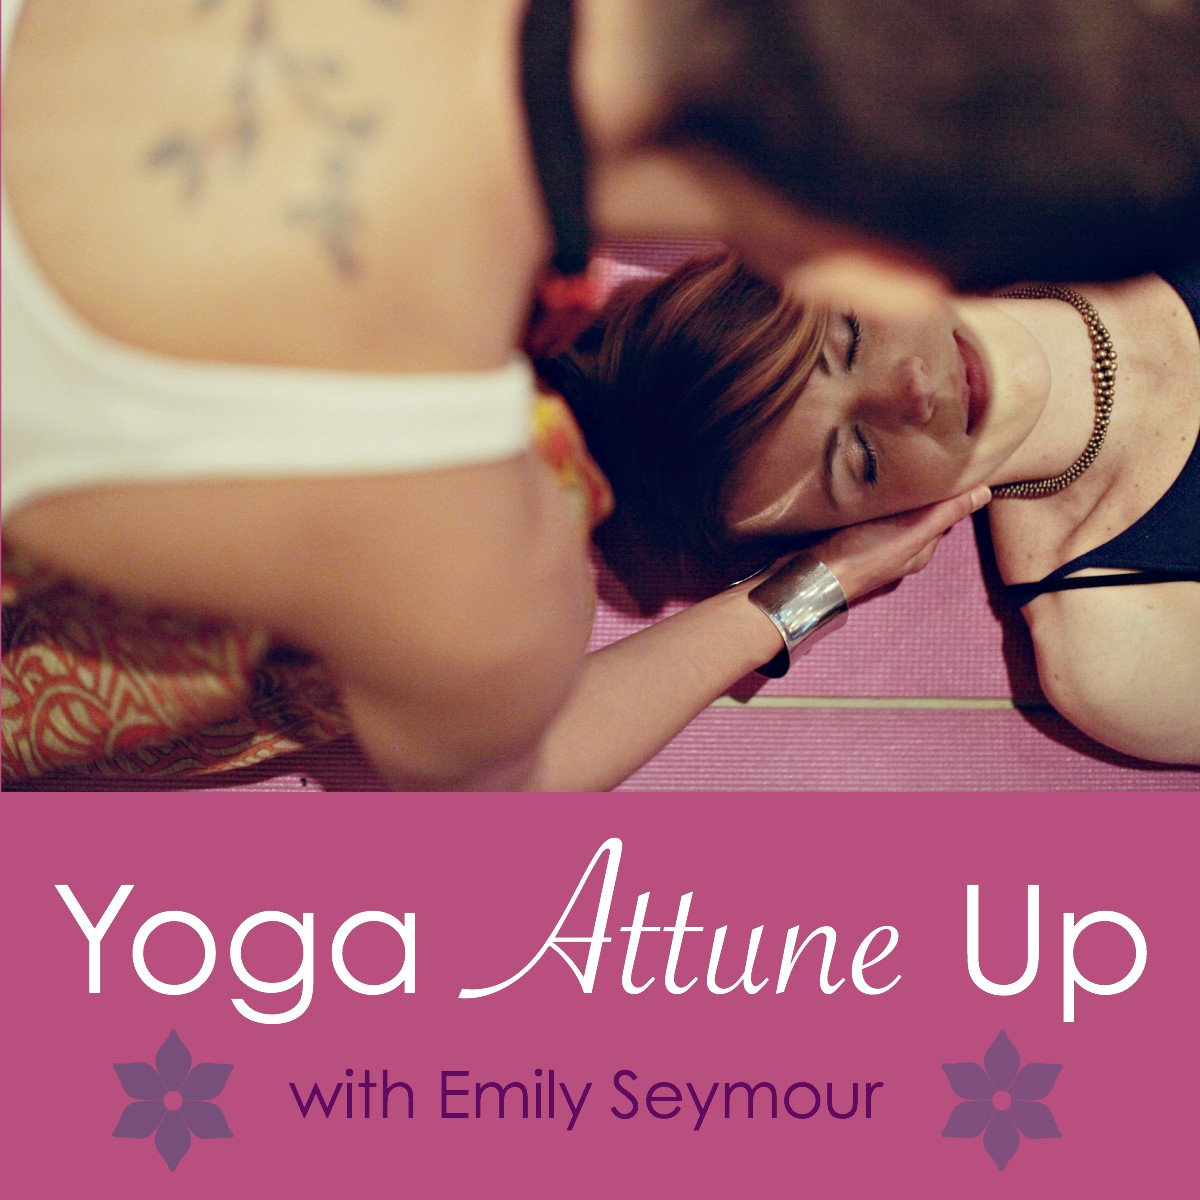 Yoga Attune Up